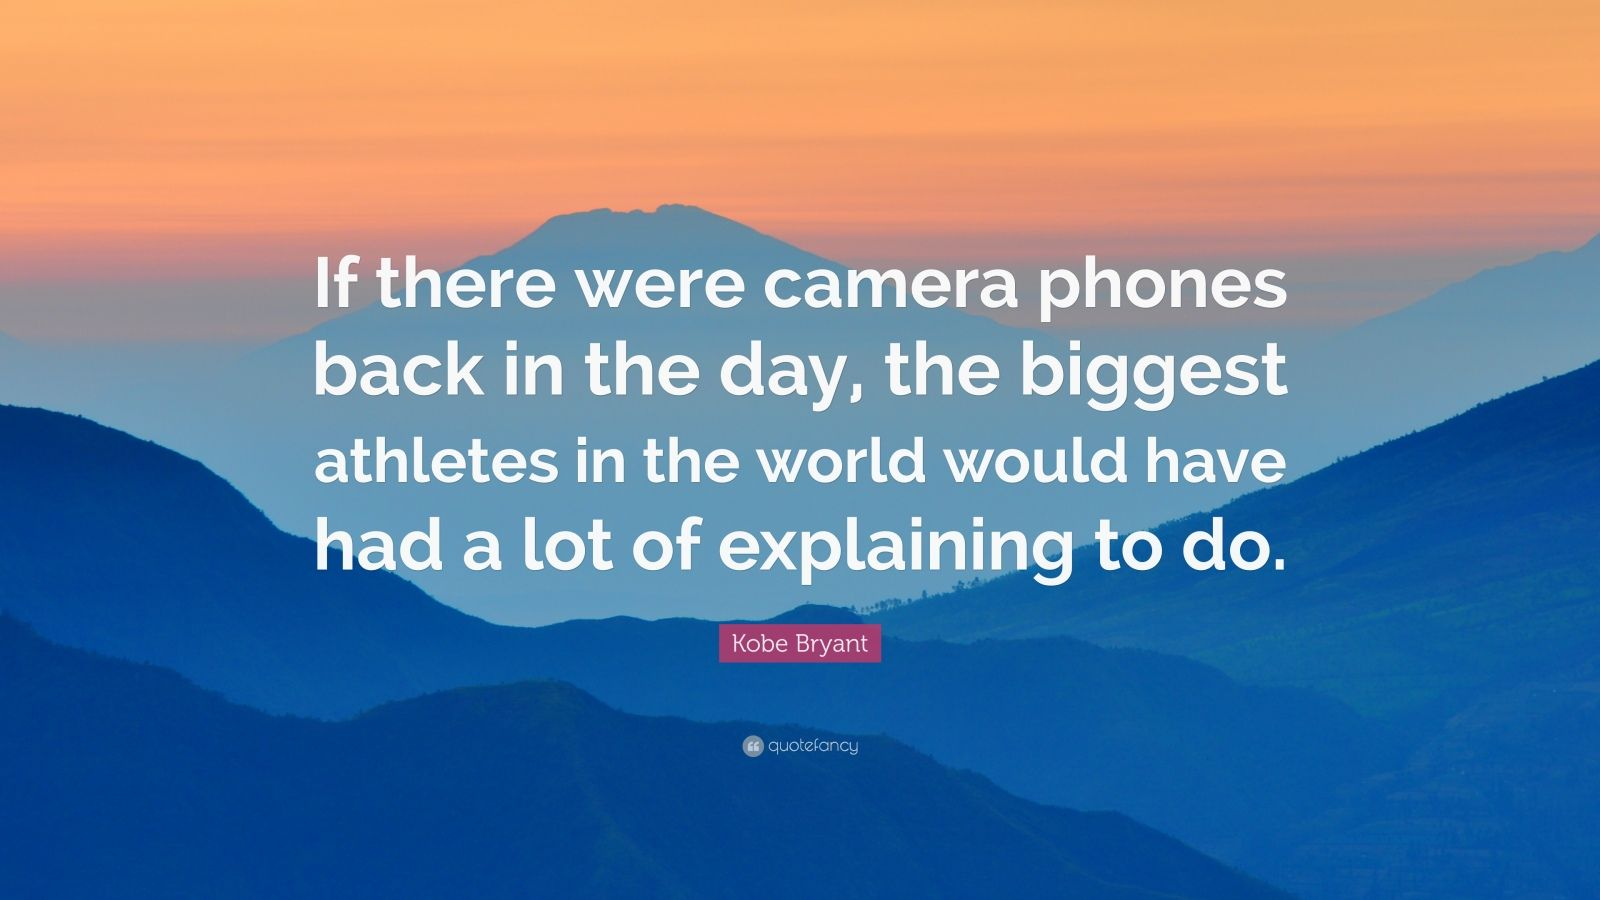 """Kobe Bryant Quote: """"If there were camera phones back in the day, the biggest athletes in the world would have had a lot of explaining to do."""""""